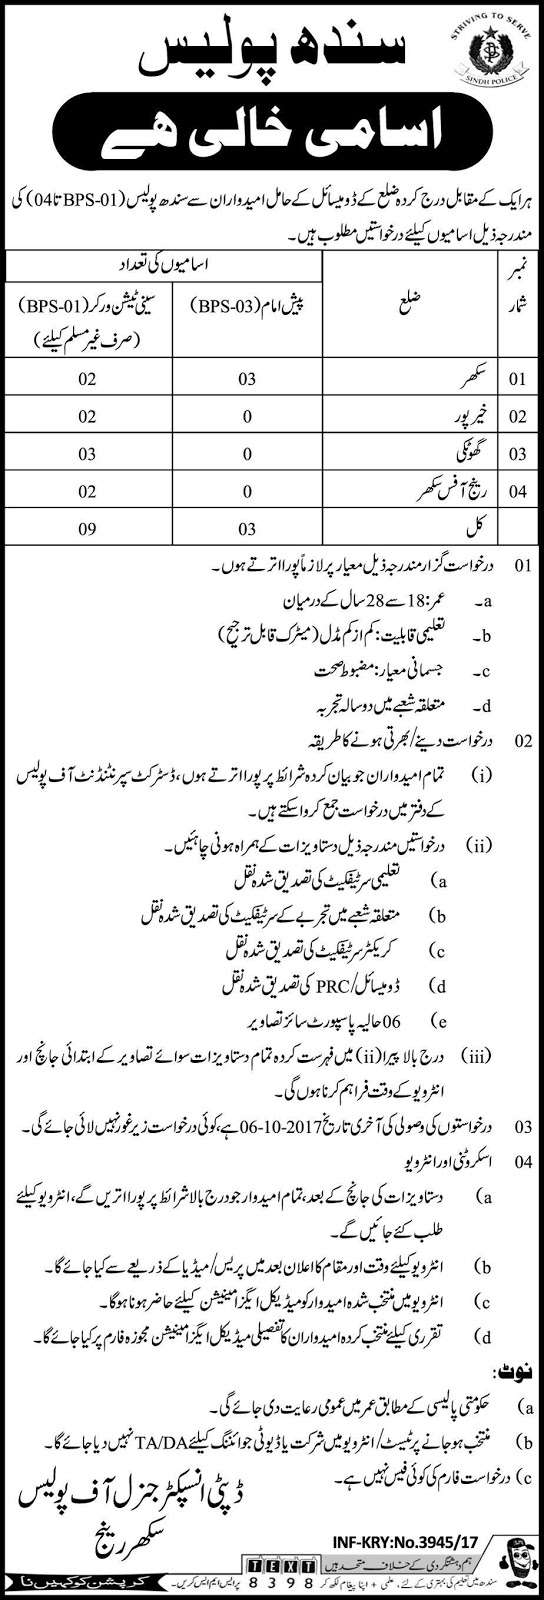 jobs in Sindh Police Department Hyderabad Range22